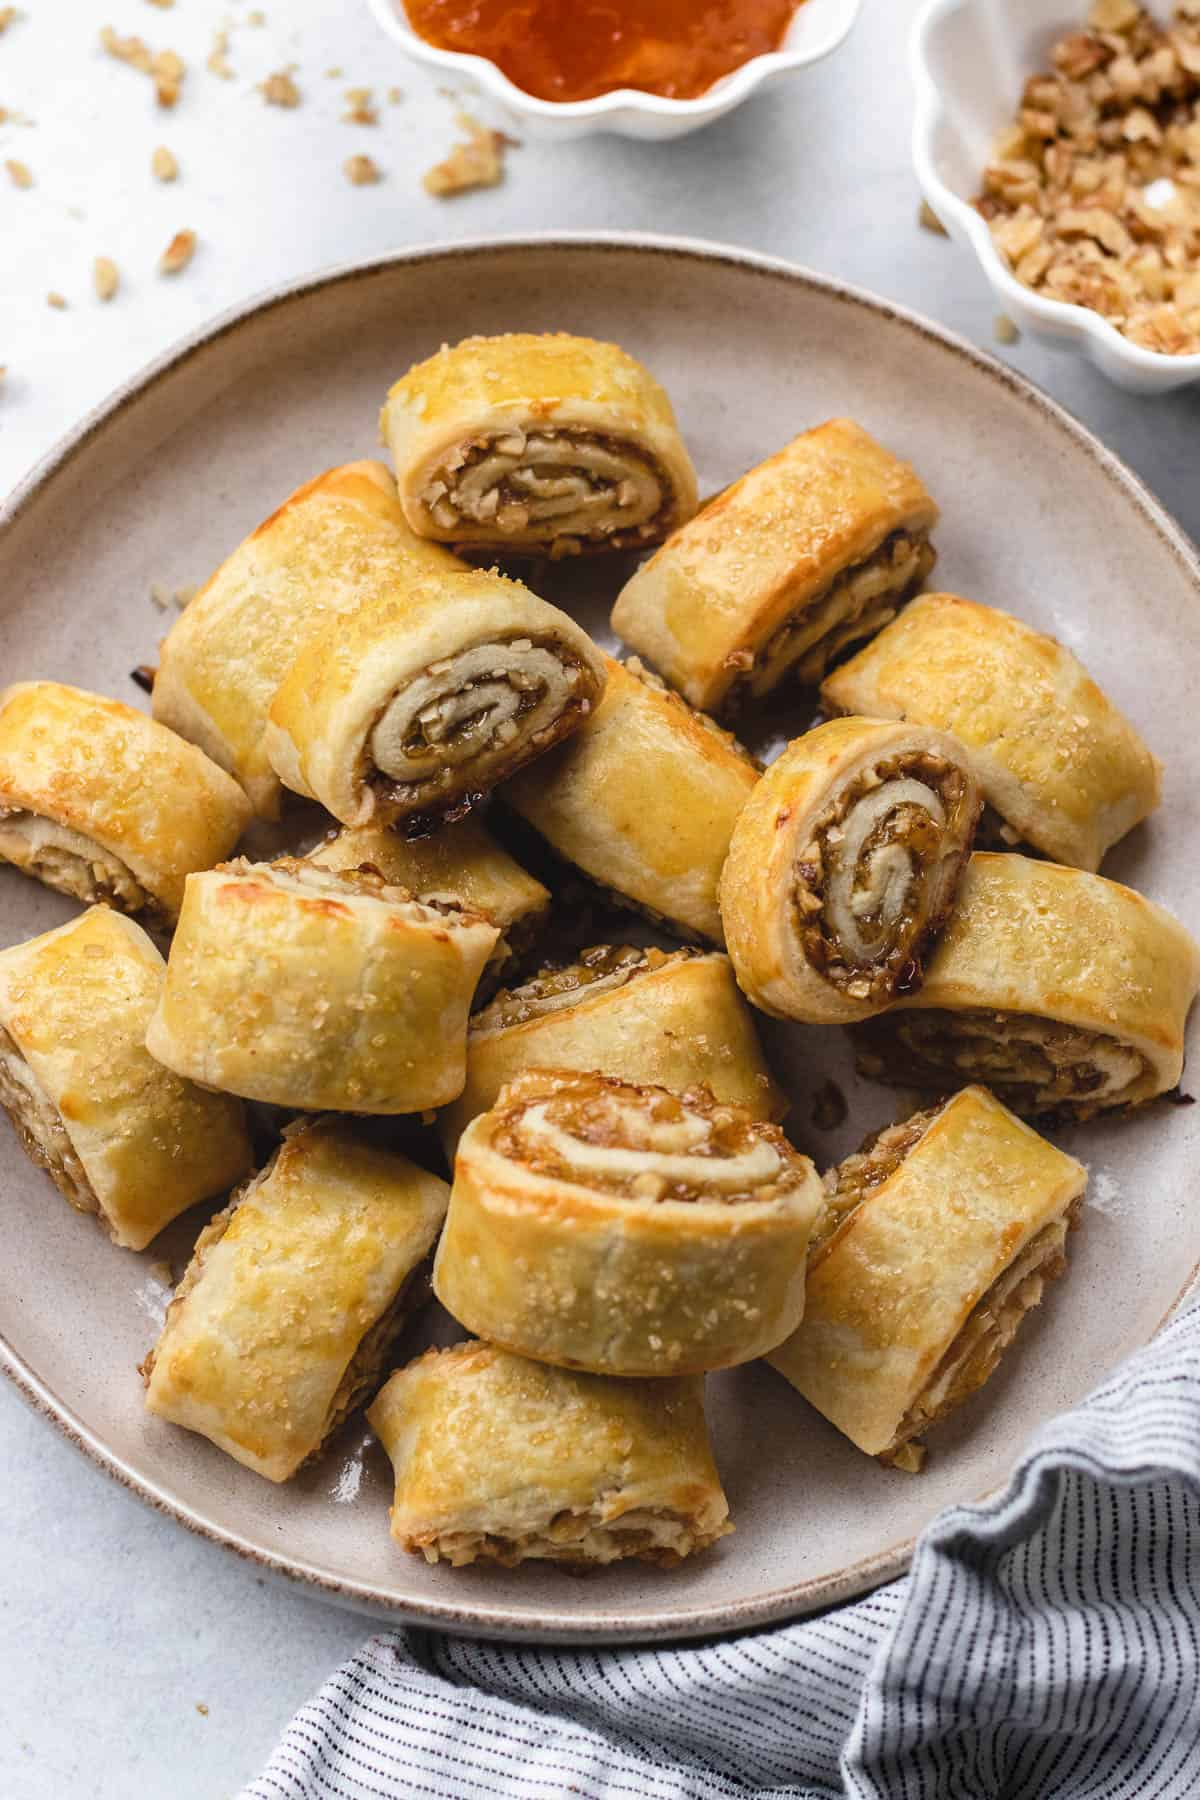 Baked Apricot rugelach cookies on a round plate, with a towel, chopped walnuts and jam on the side.